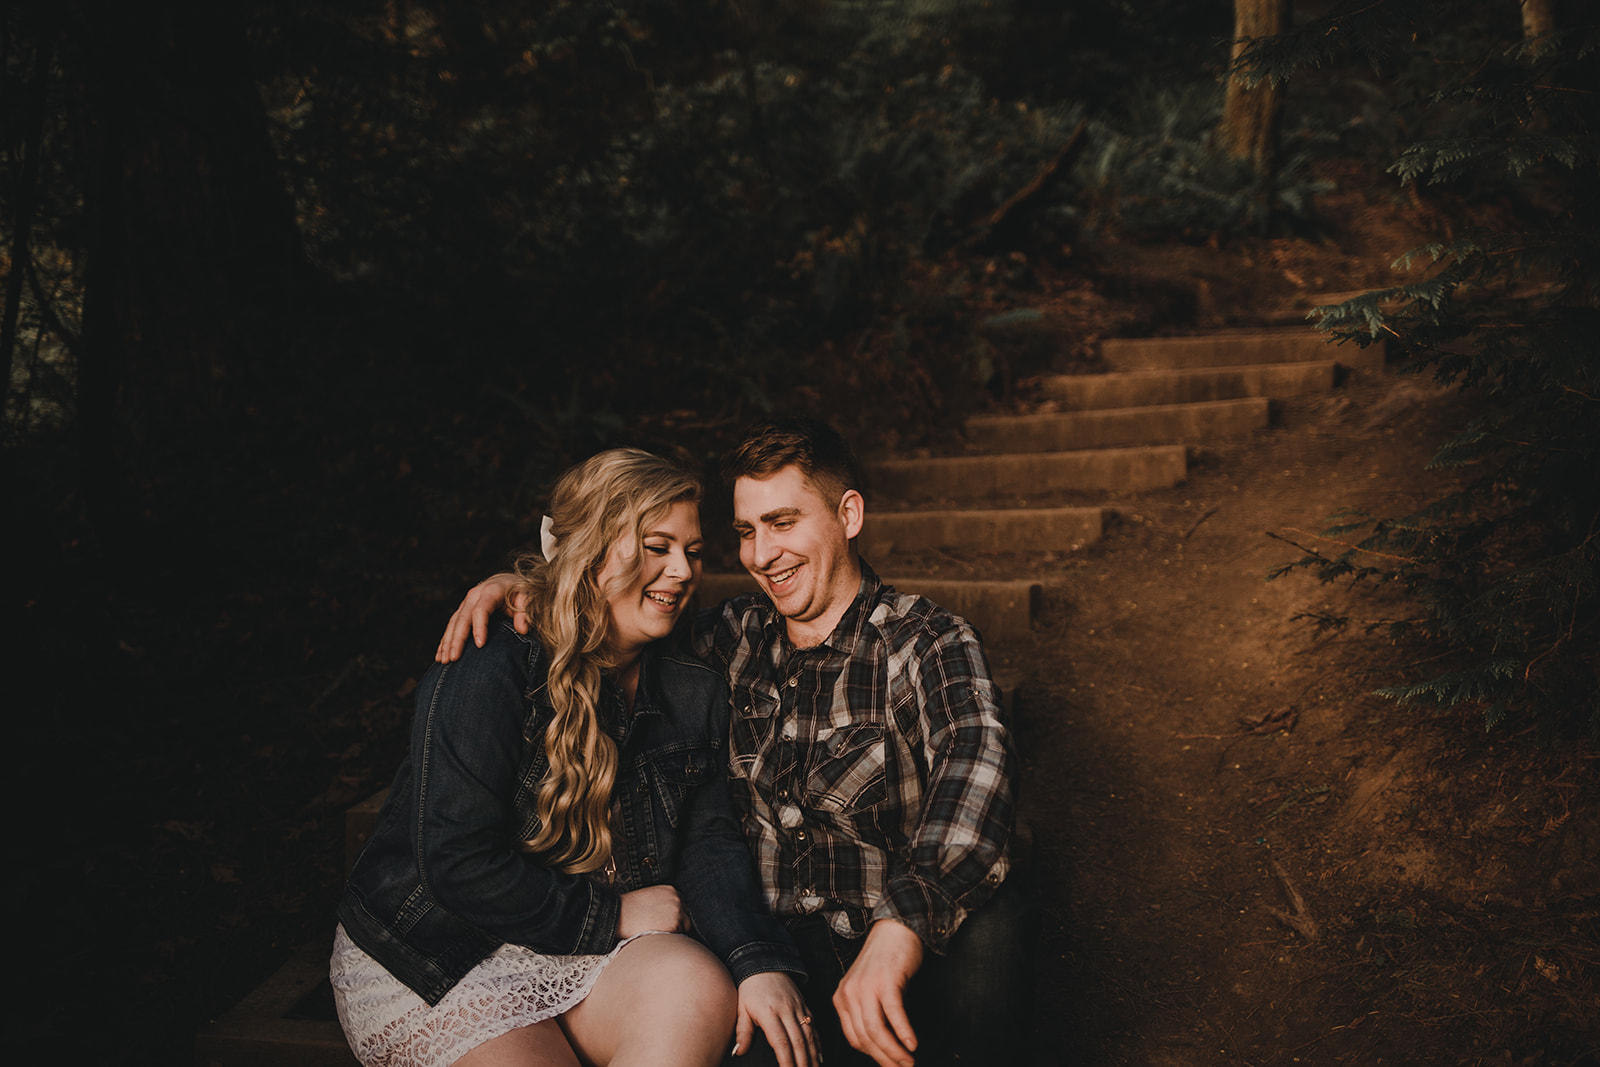 teddy-bear-cove-chuckanut-drive-bellingham-washington-engagement-megan-gallagher-photography